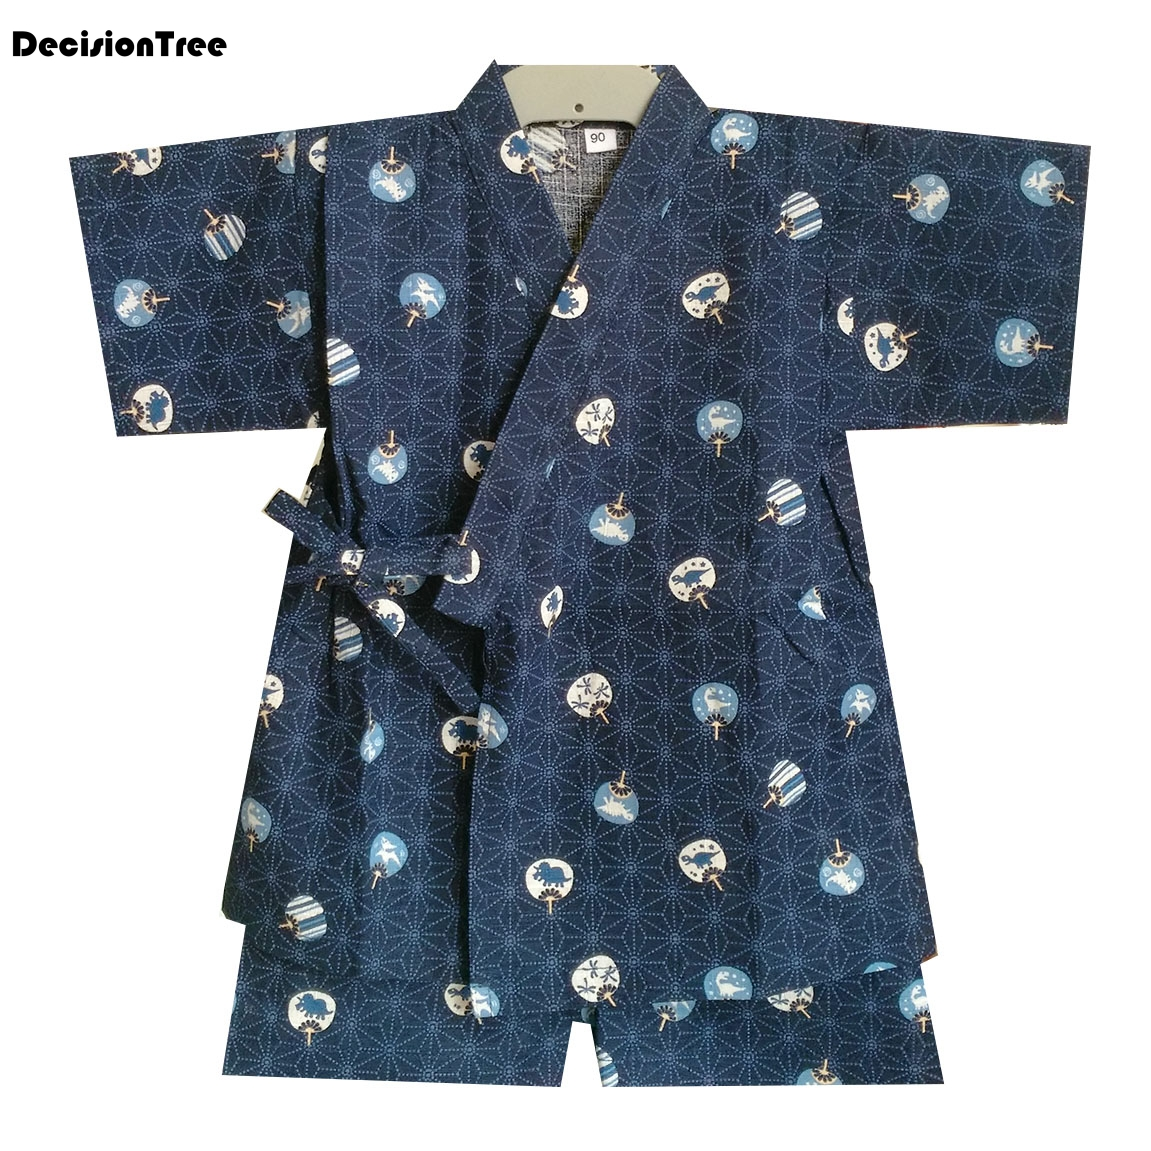 2019 new boys pajamas sets children blue printing pajamas set infantil short home clothes cartoon cotton kimono sleepwear image